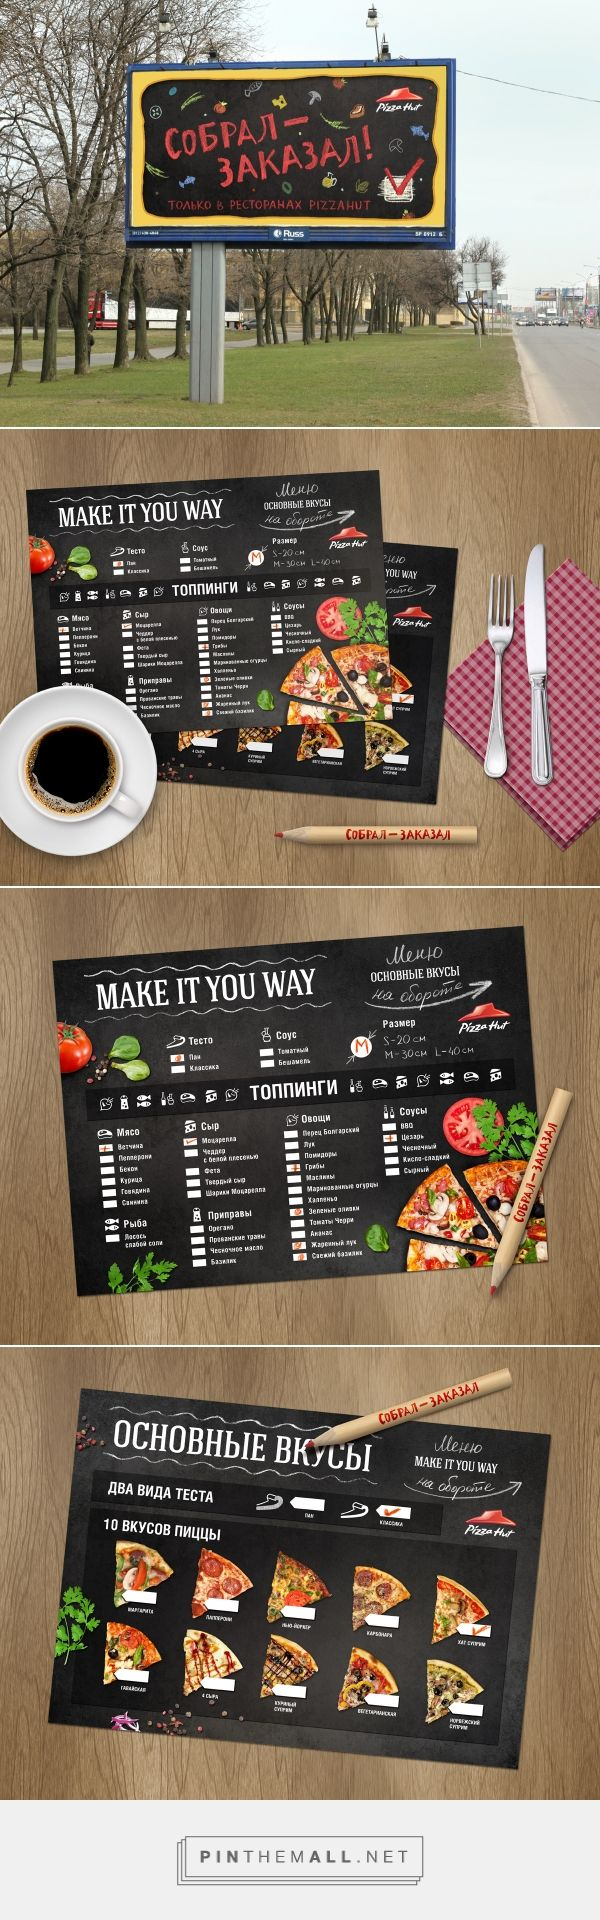 WeDesign: Рекламные кампании  – Pizza Hut - created via http://pinthemall.net